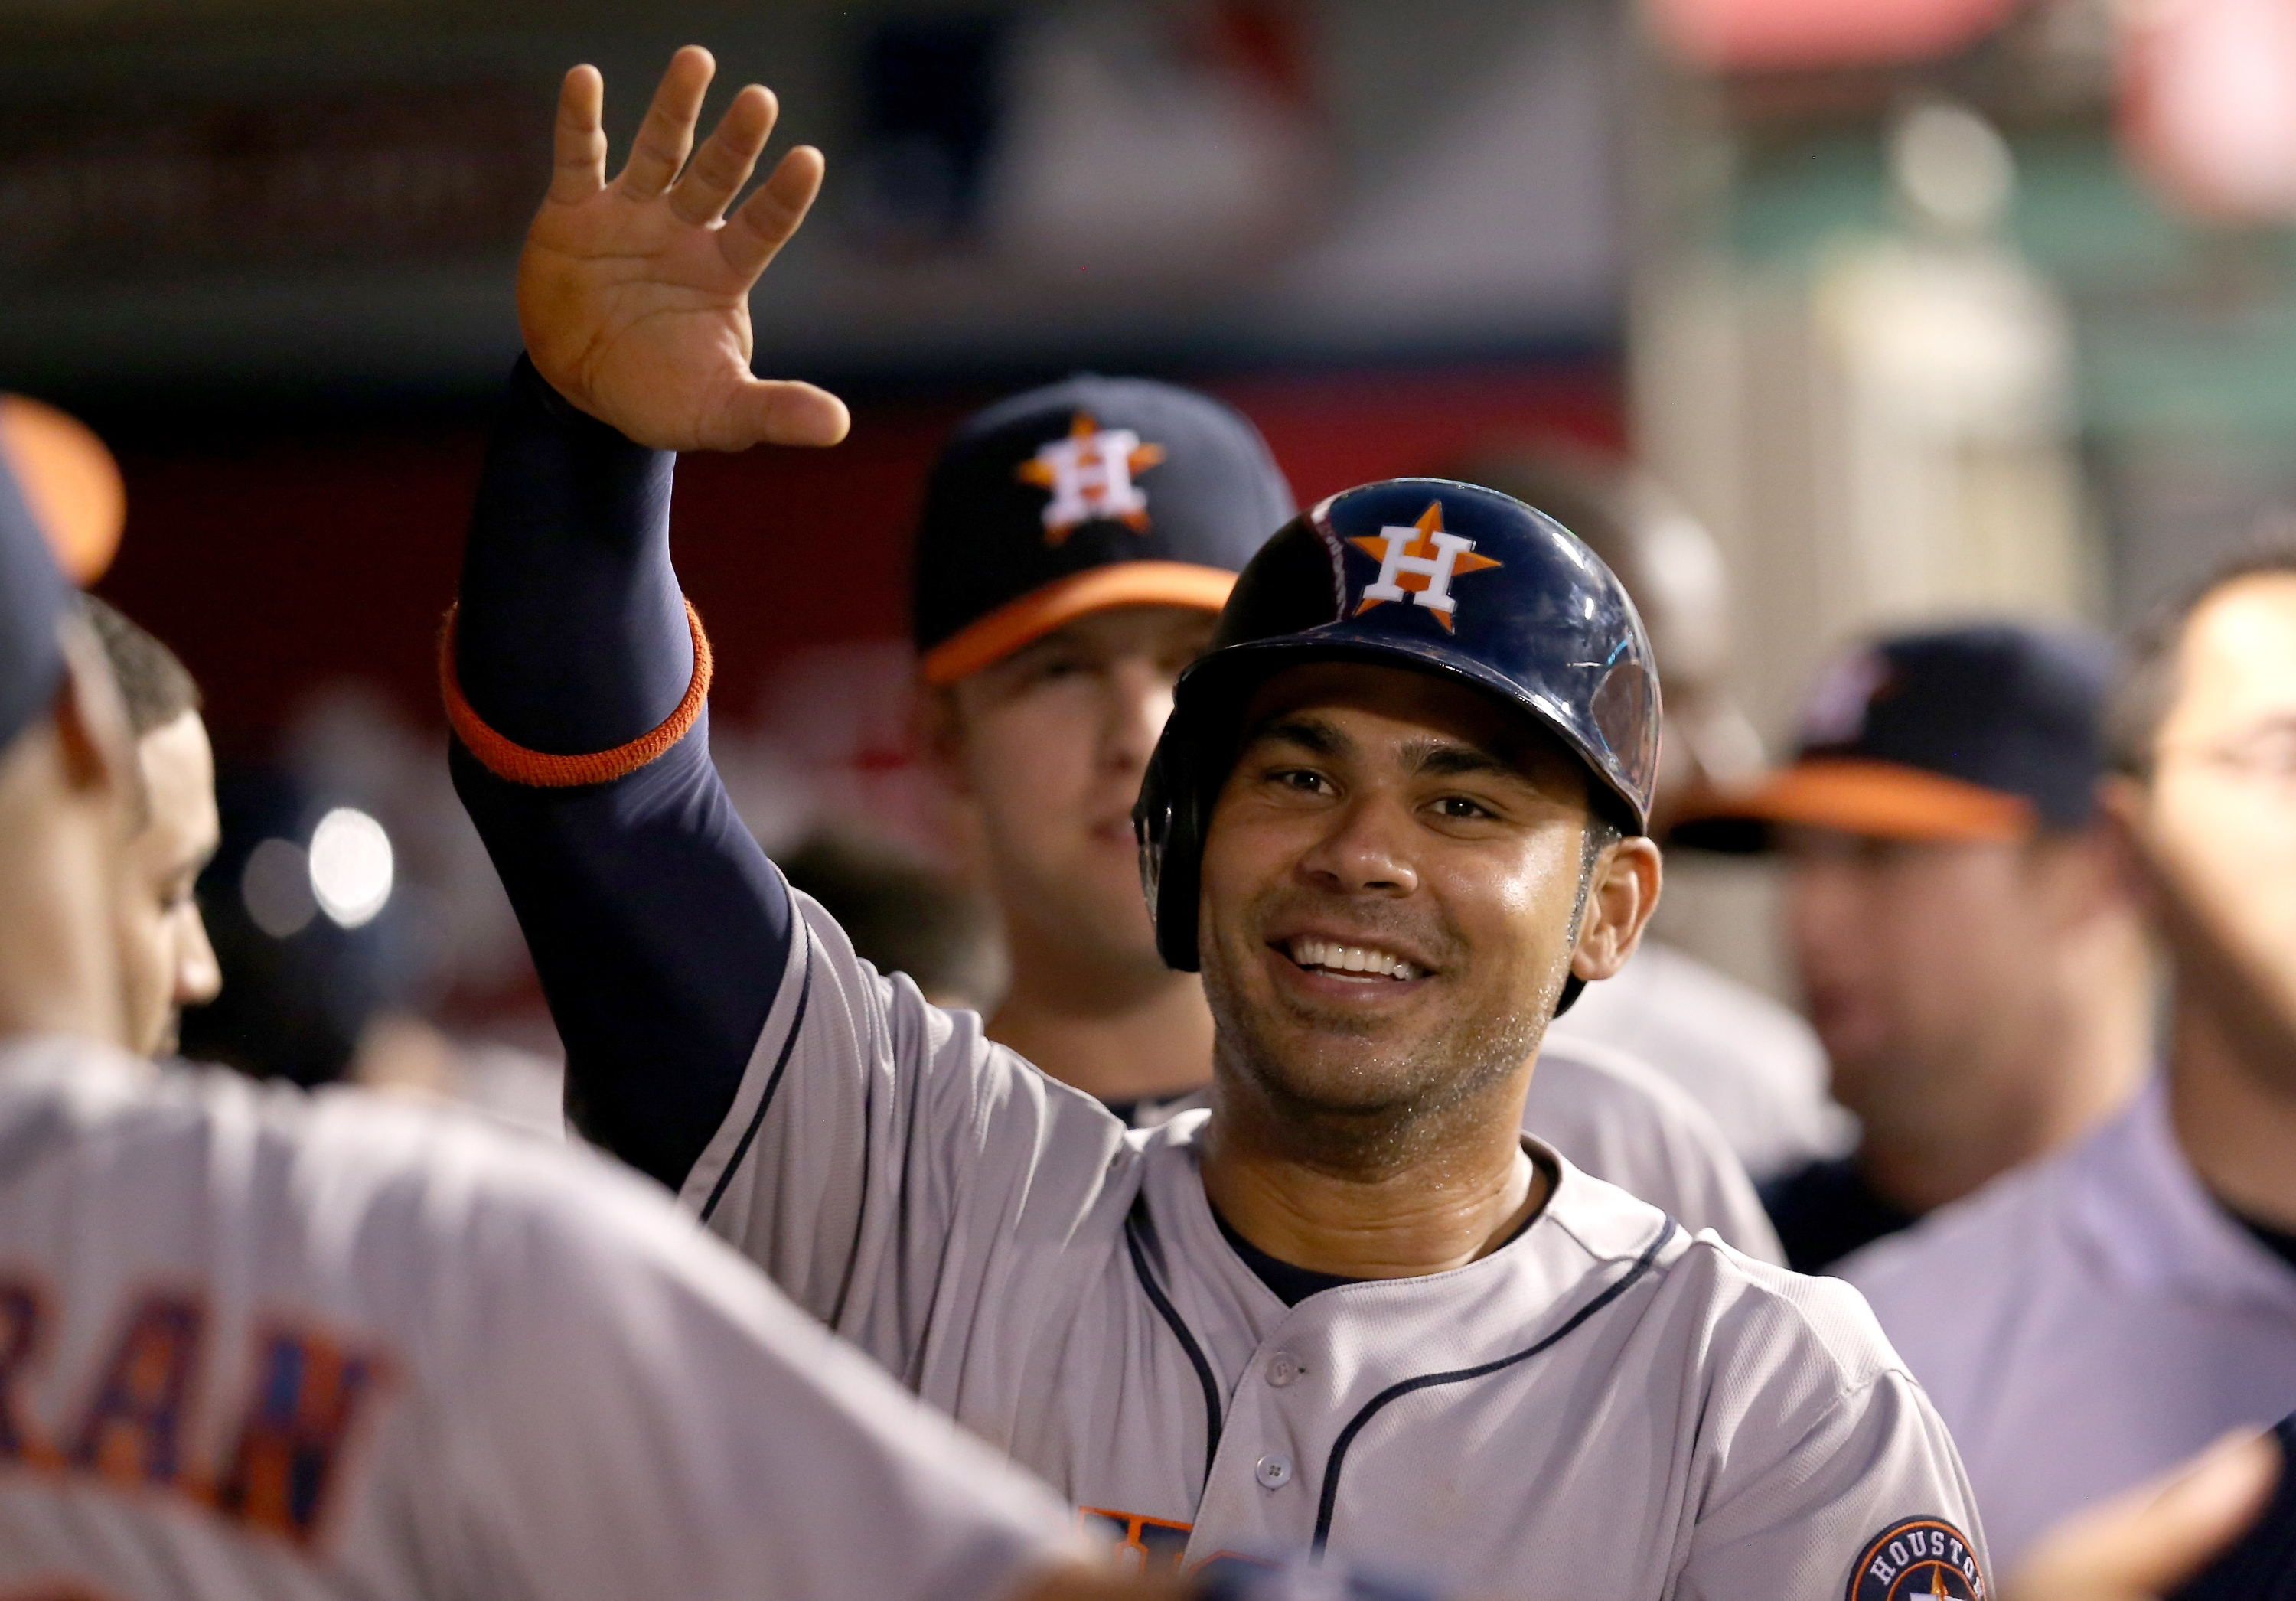 Carlos Pena celebrates in the dugout after scoring a run on a sacrifice fly. (Getty)